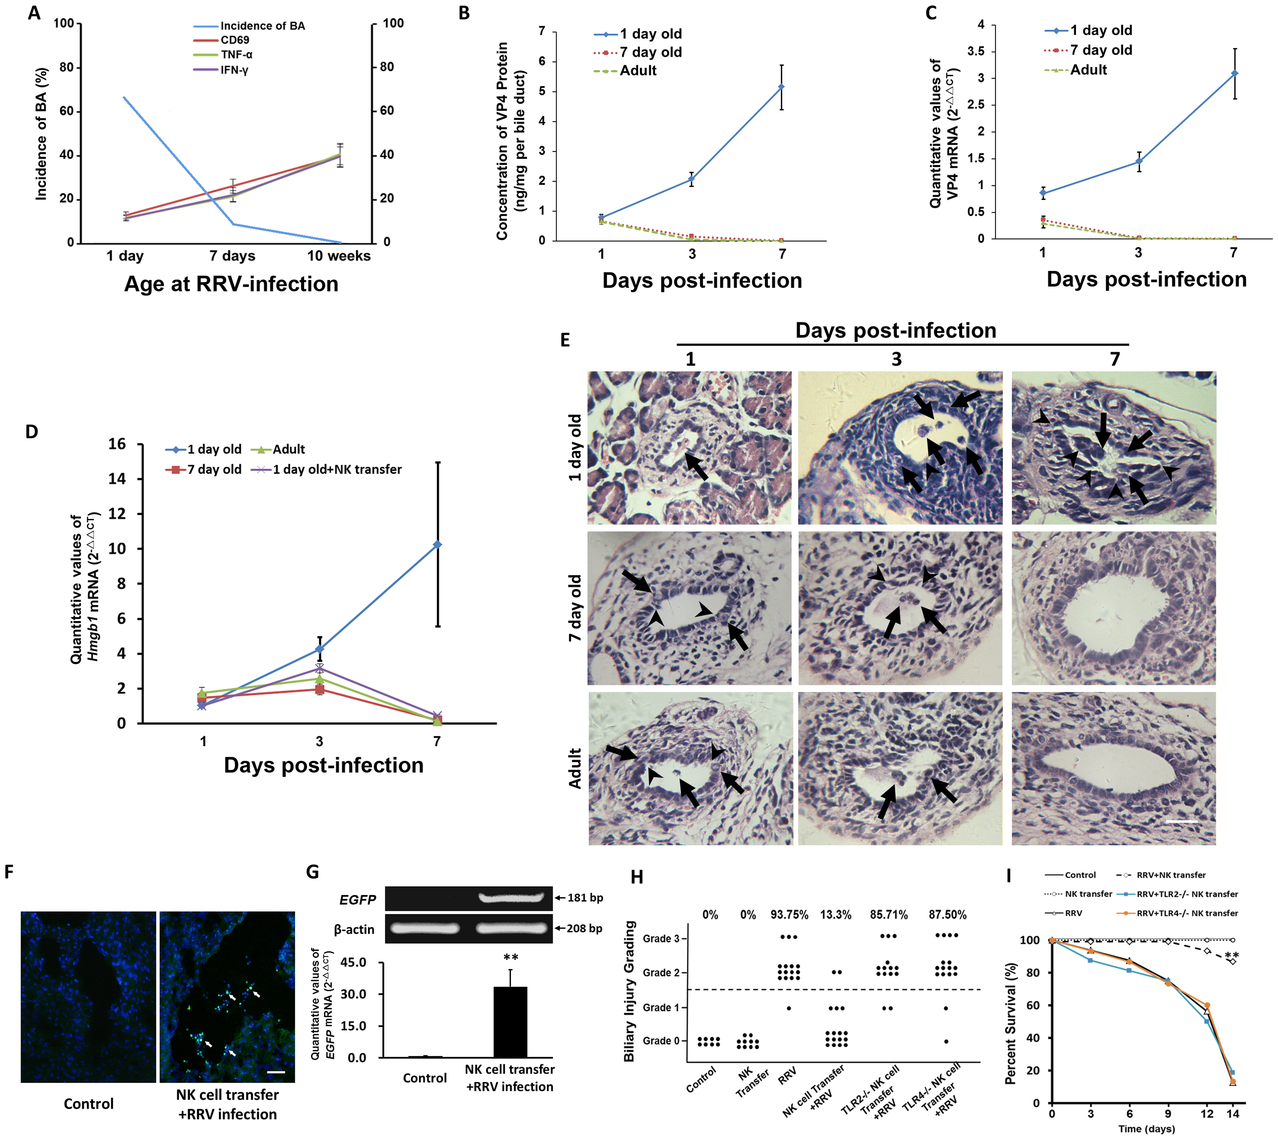 Adoptive transfer of mature NK cells decreases the incidence of BA and improves survival, and the level of VP4 in cholangiocytes and the incidence of BA are decreased as the age of mice increases.